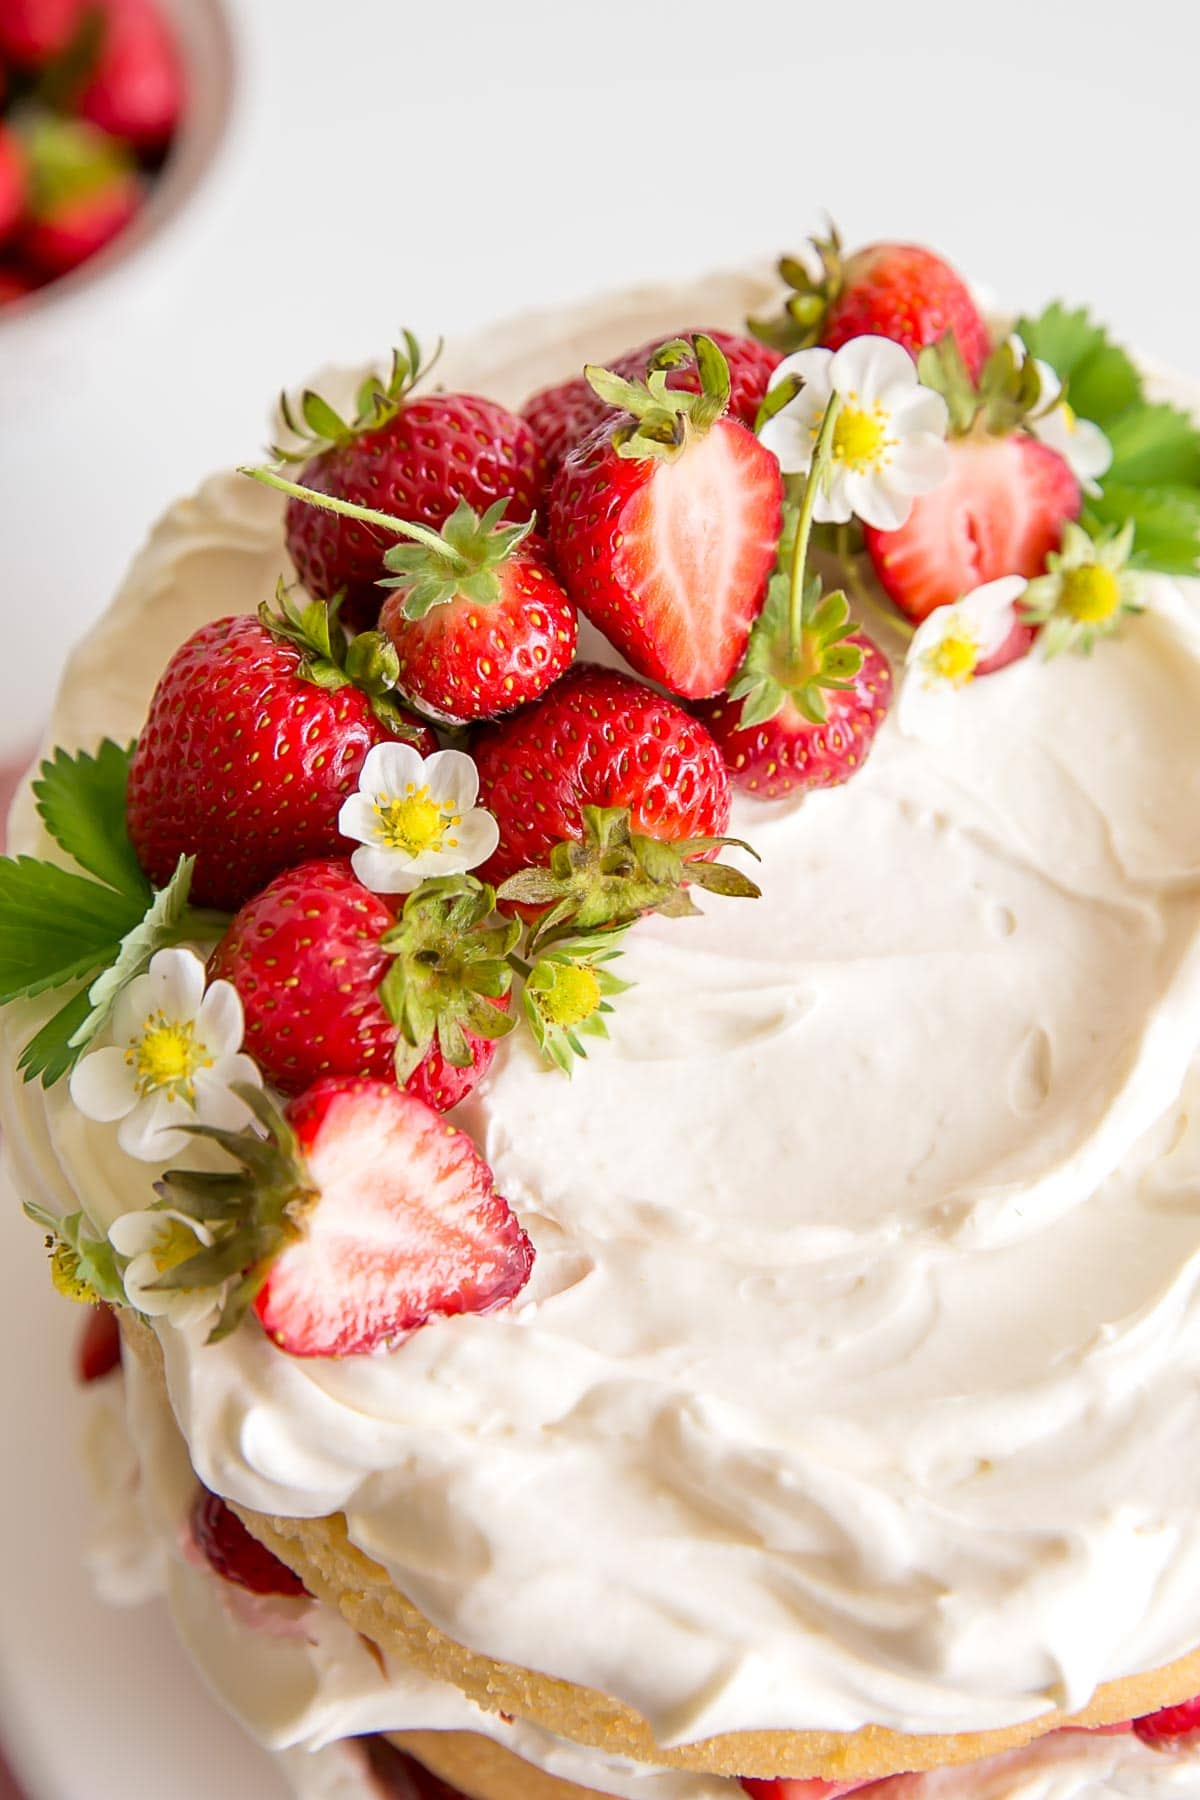 Fresh strawberries and strawberry flowers on top of mascarpone cream on the cake